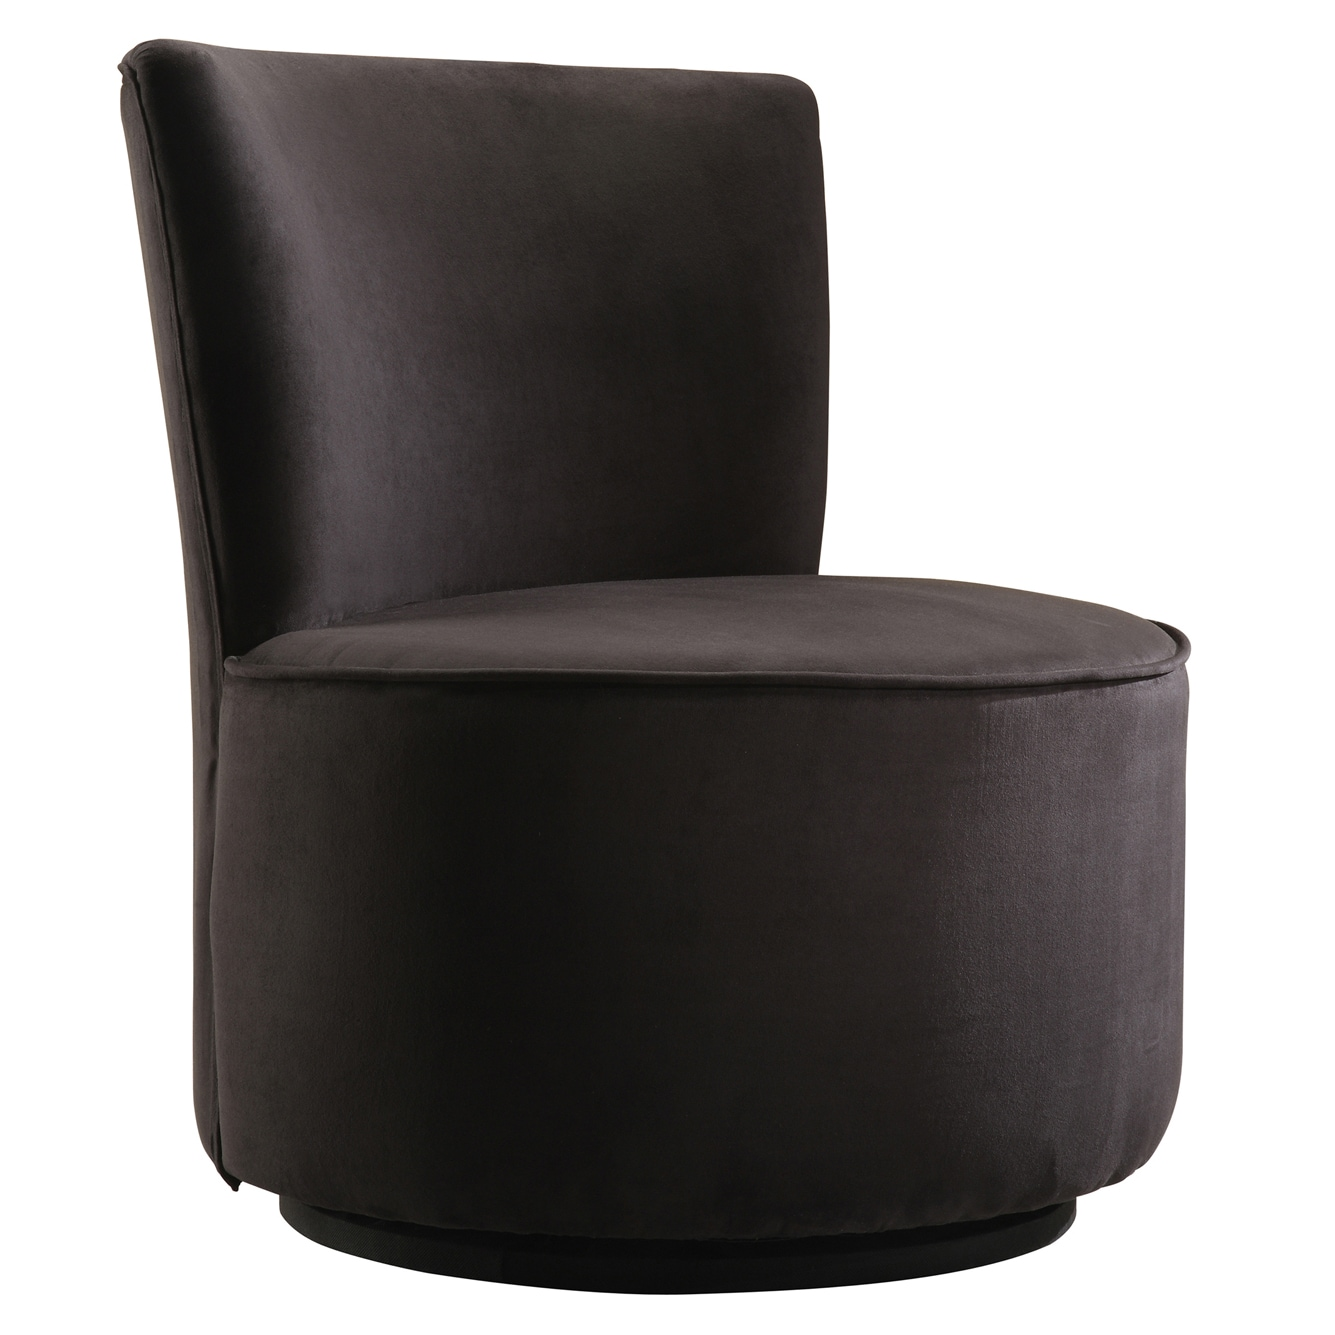 Tribecca Home Moda Black Microfiber Modern Round Swivel Chair Free Shipping Today 4100292